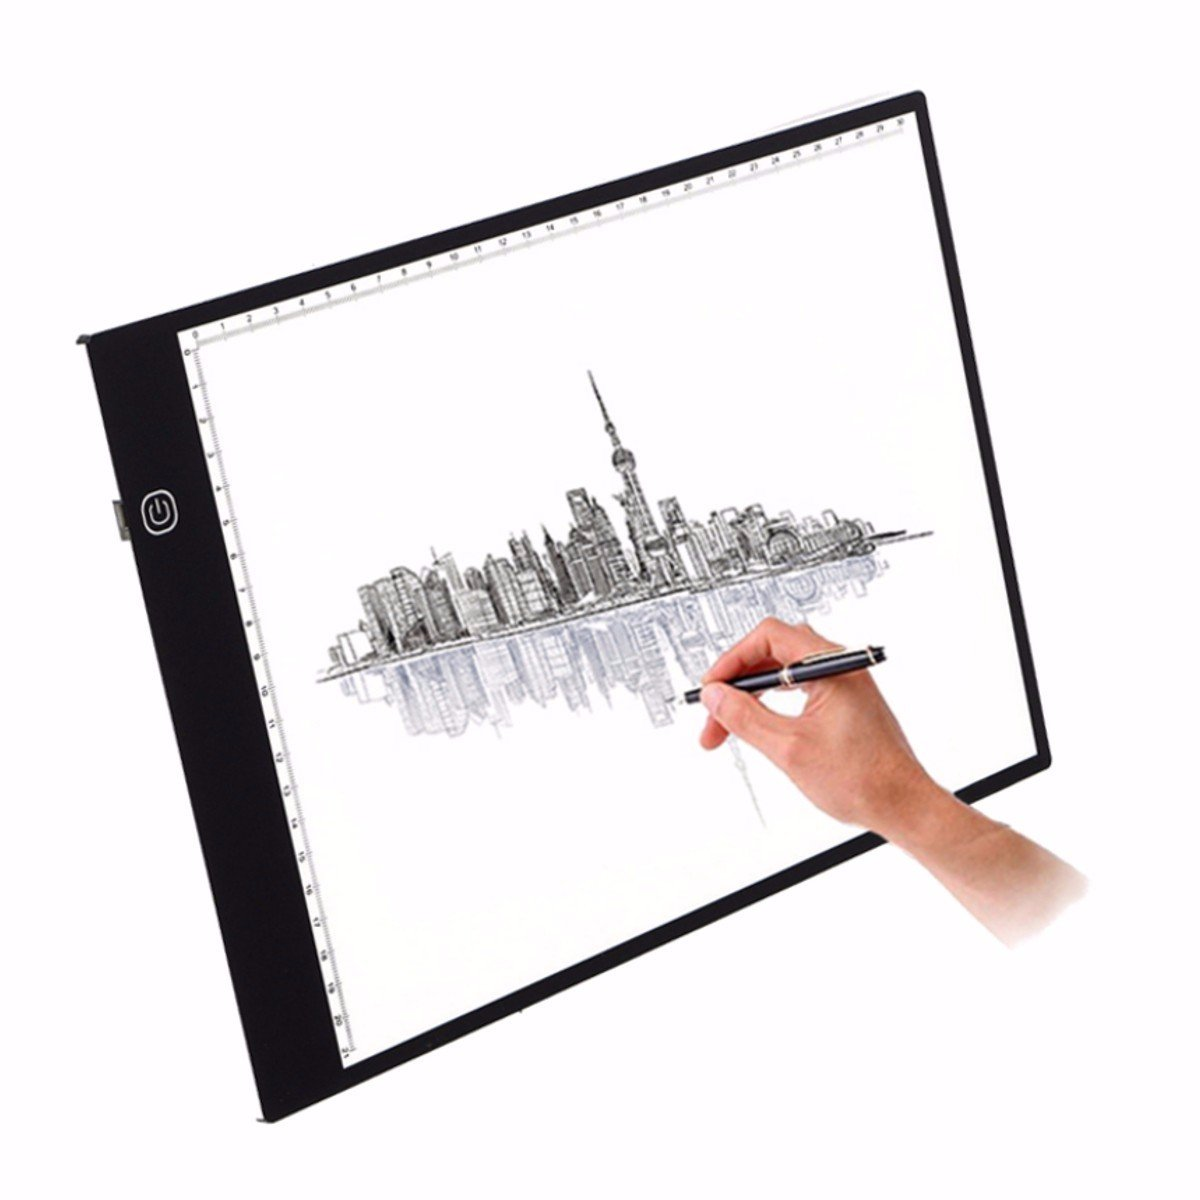 Dimmer Switch Wiringdimmerswitchsketch1jpg Led Copy Board Mway A2 A3 A4 Super Thin Drawing Tracing Light Box Track With Brightness Adjustable Tattoo Sketch Architecture Calligraphy